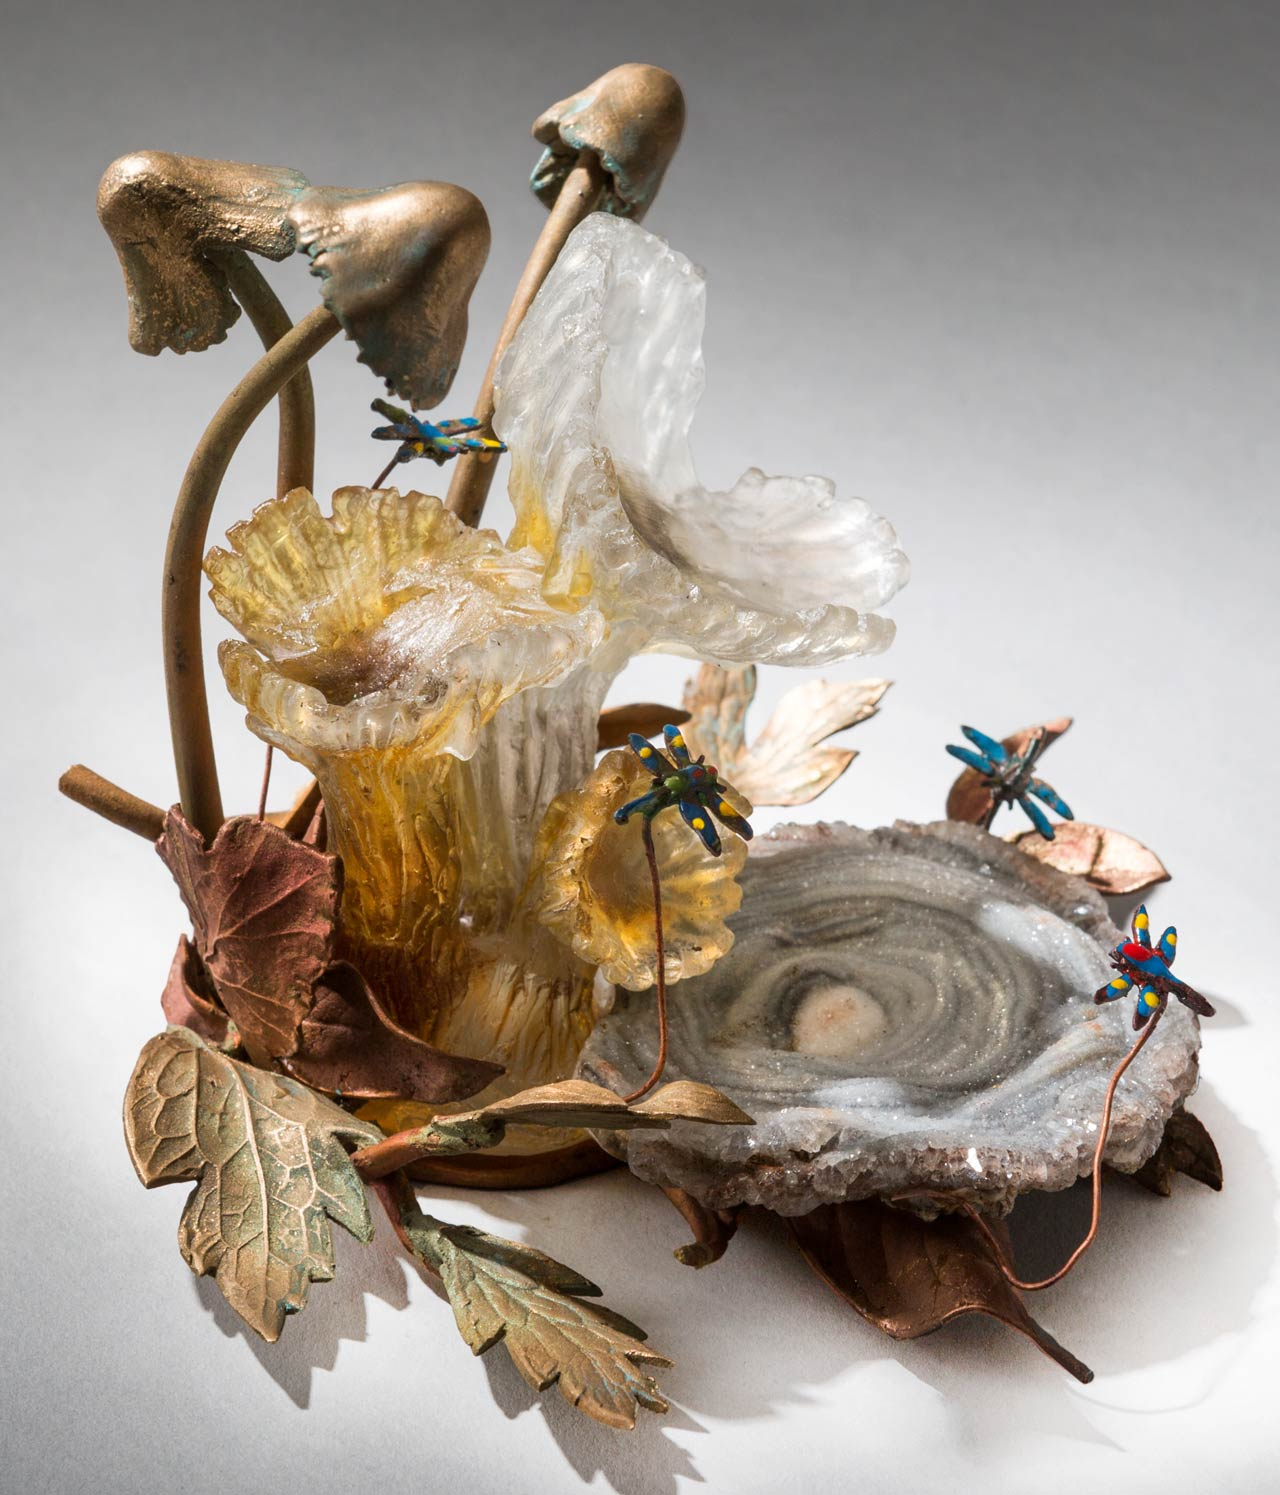 glass sculpture: mushrooms and dragonflies